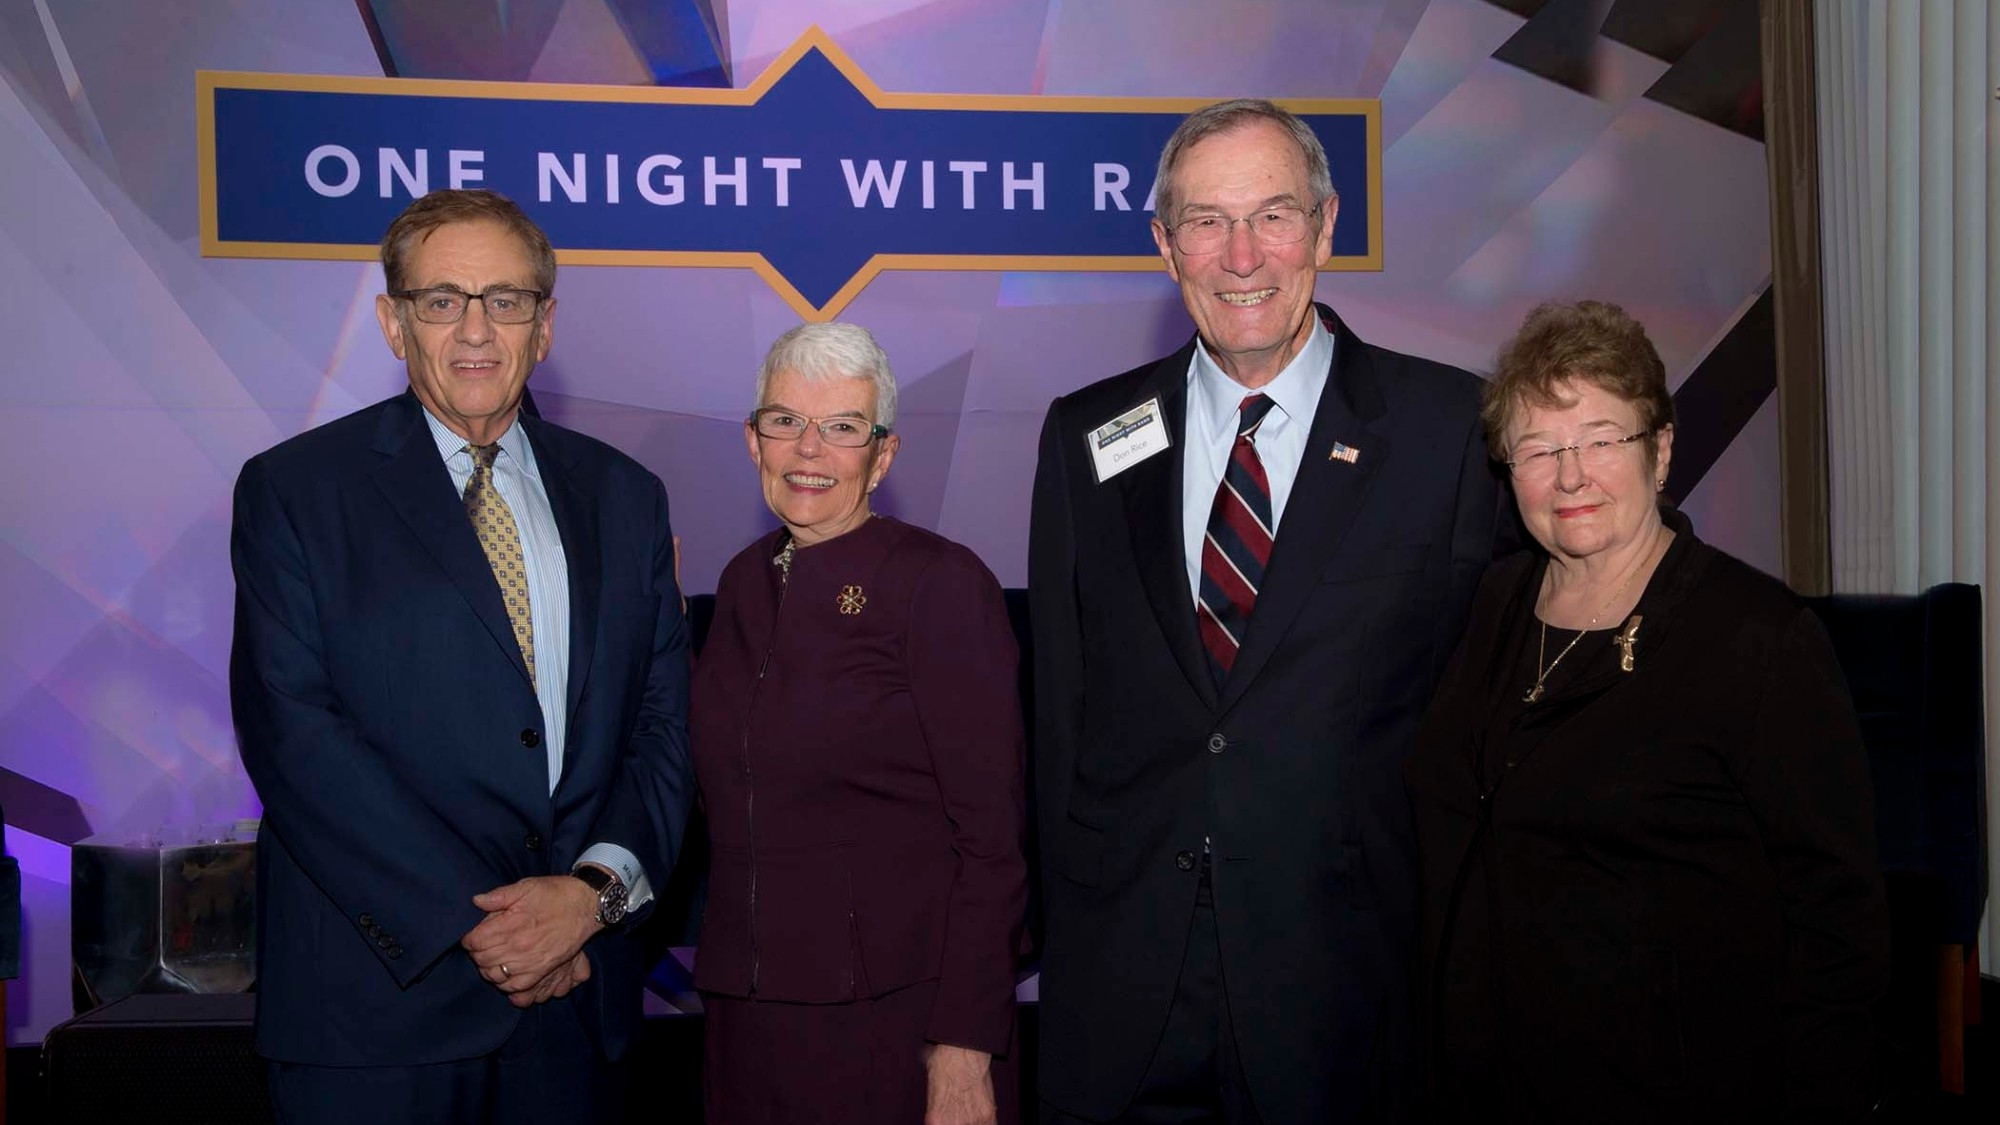 Michael Rich with honorees Susan and Donald Rice and Natalie Crawford at the One Night with RAND event in Santa Monica, California, November 9, 2017